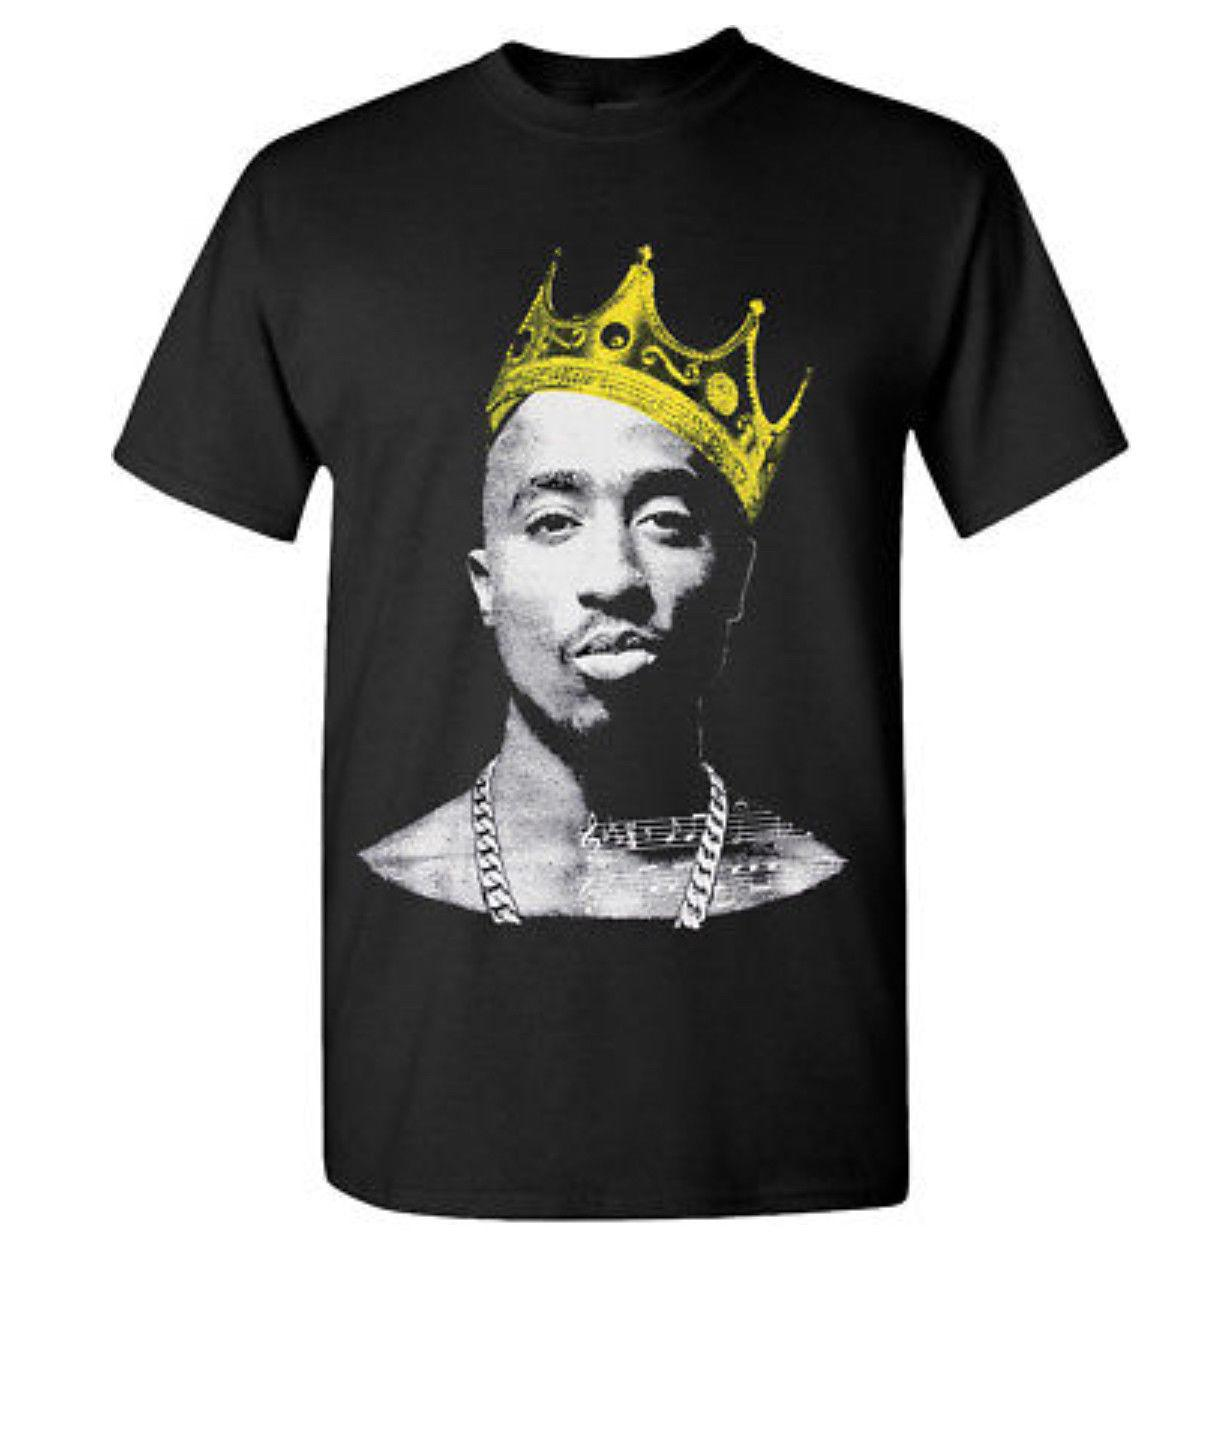 dae17b9066b0f Compre KING 2PAC Camiseta Negra Hip Hop Rapper PAC Nueva Camiseta Tupac  Shakur Men s T Crown A  11.58 Del Customizedshirts46